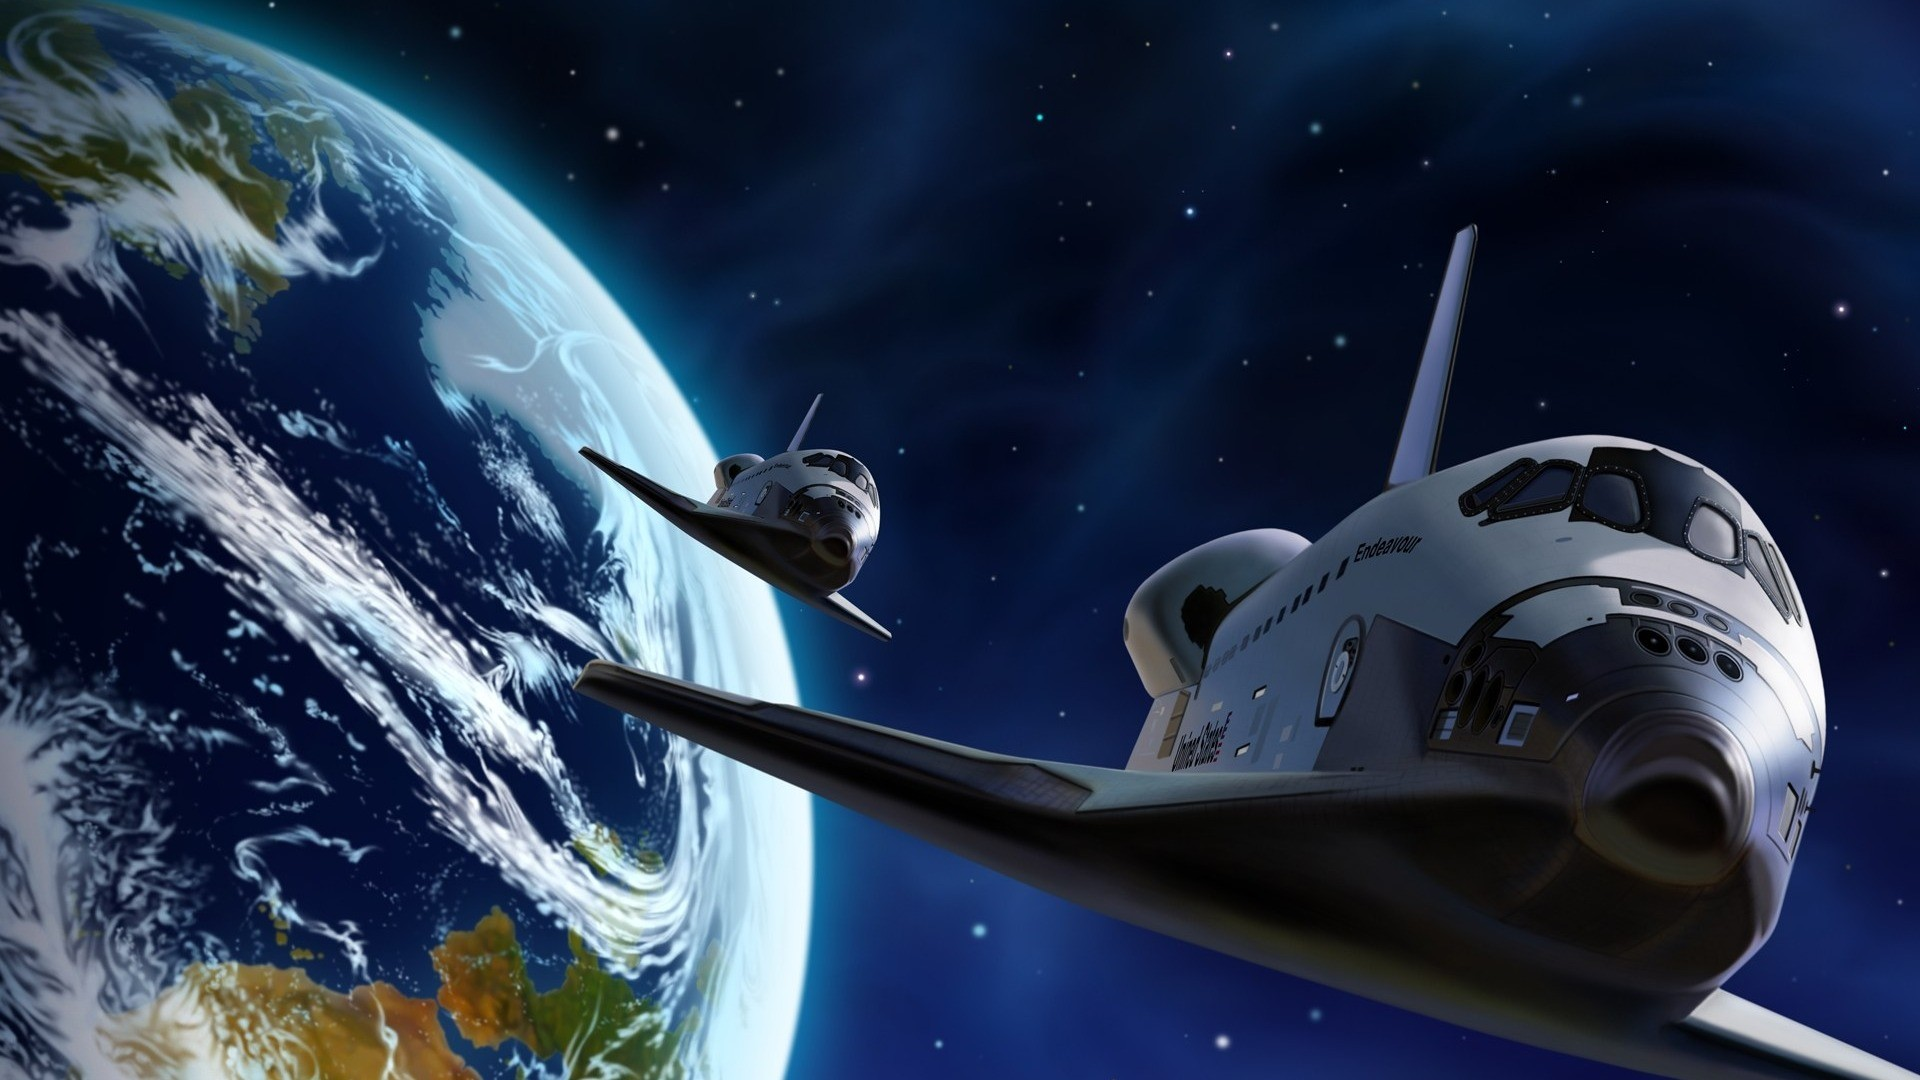 Space Shuttle Wallpaper 1920x1080 73 Images